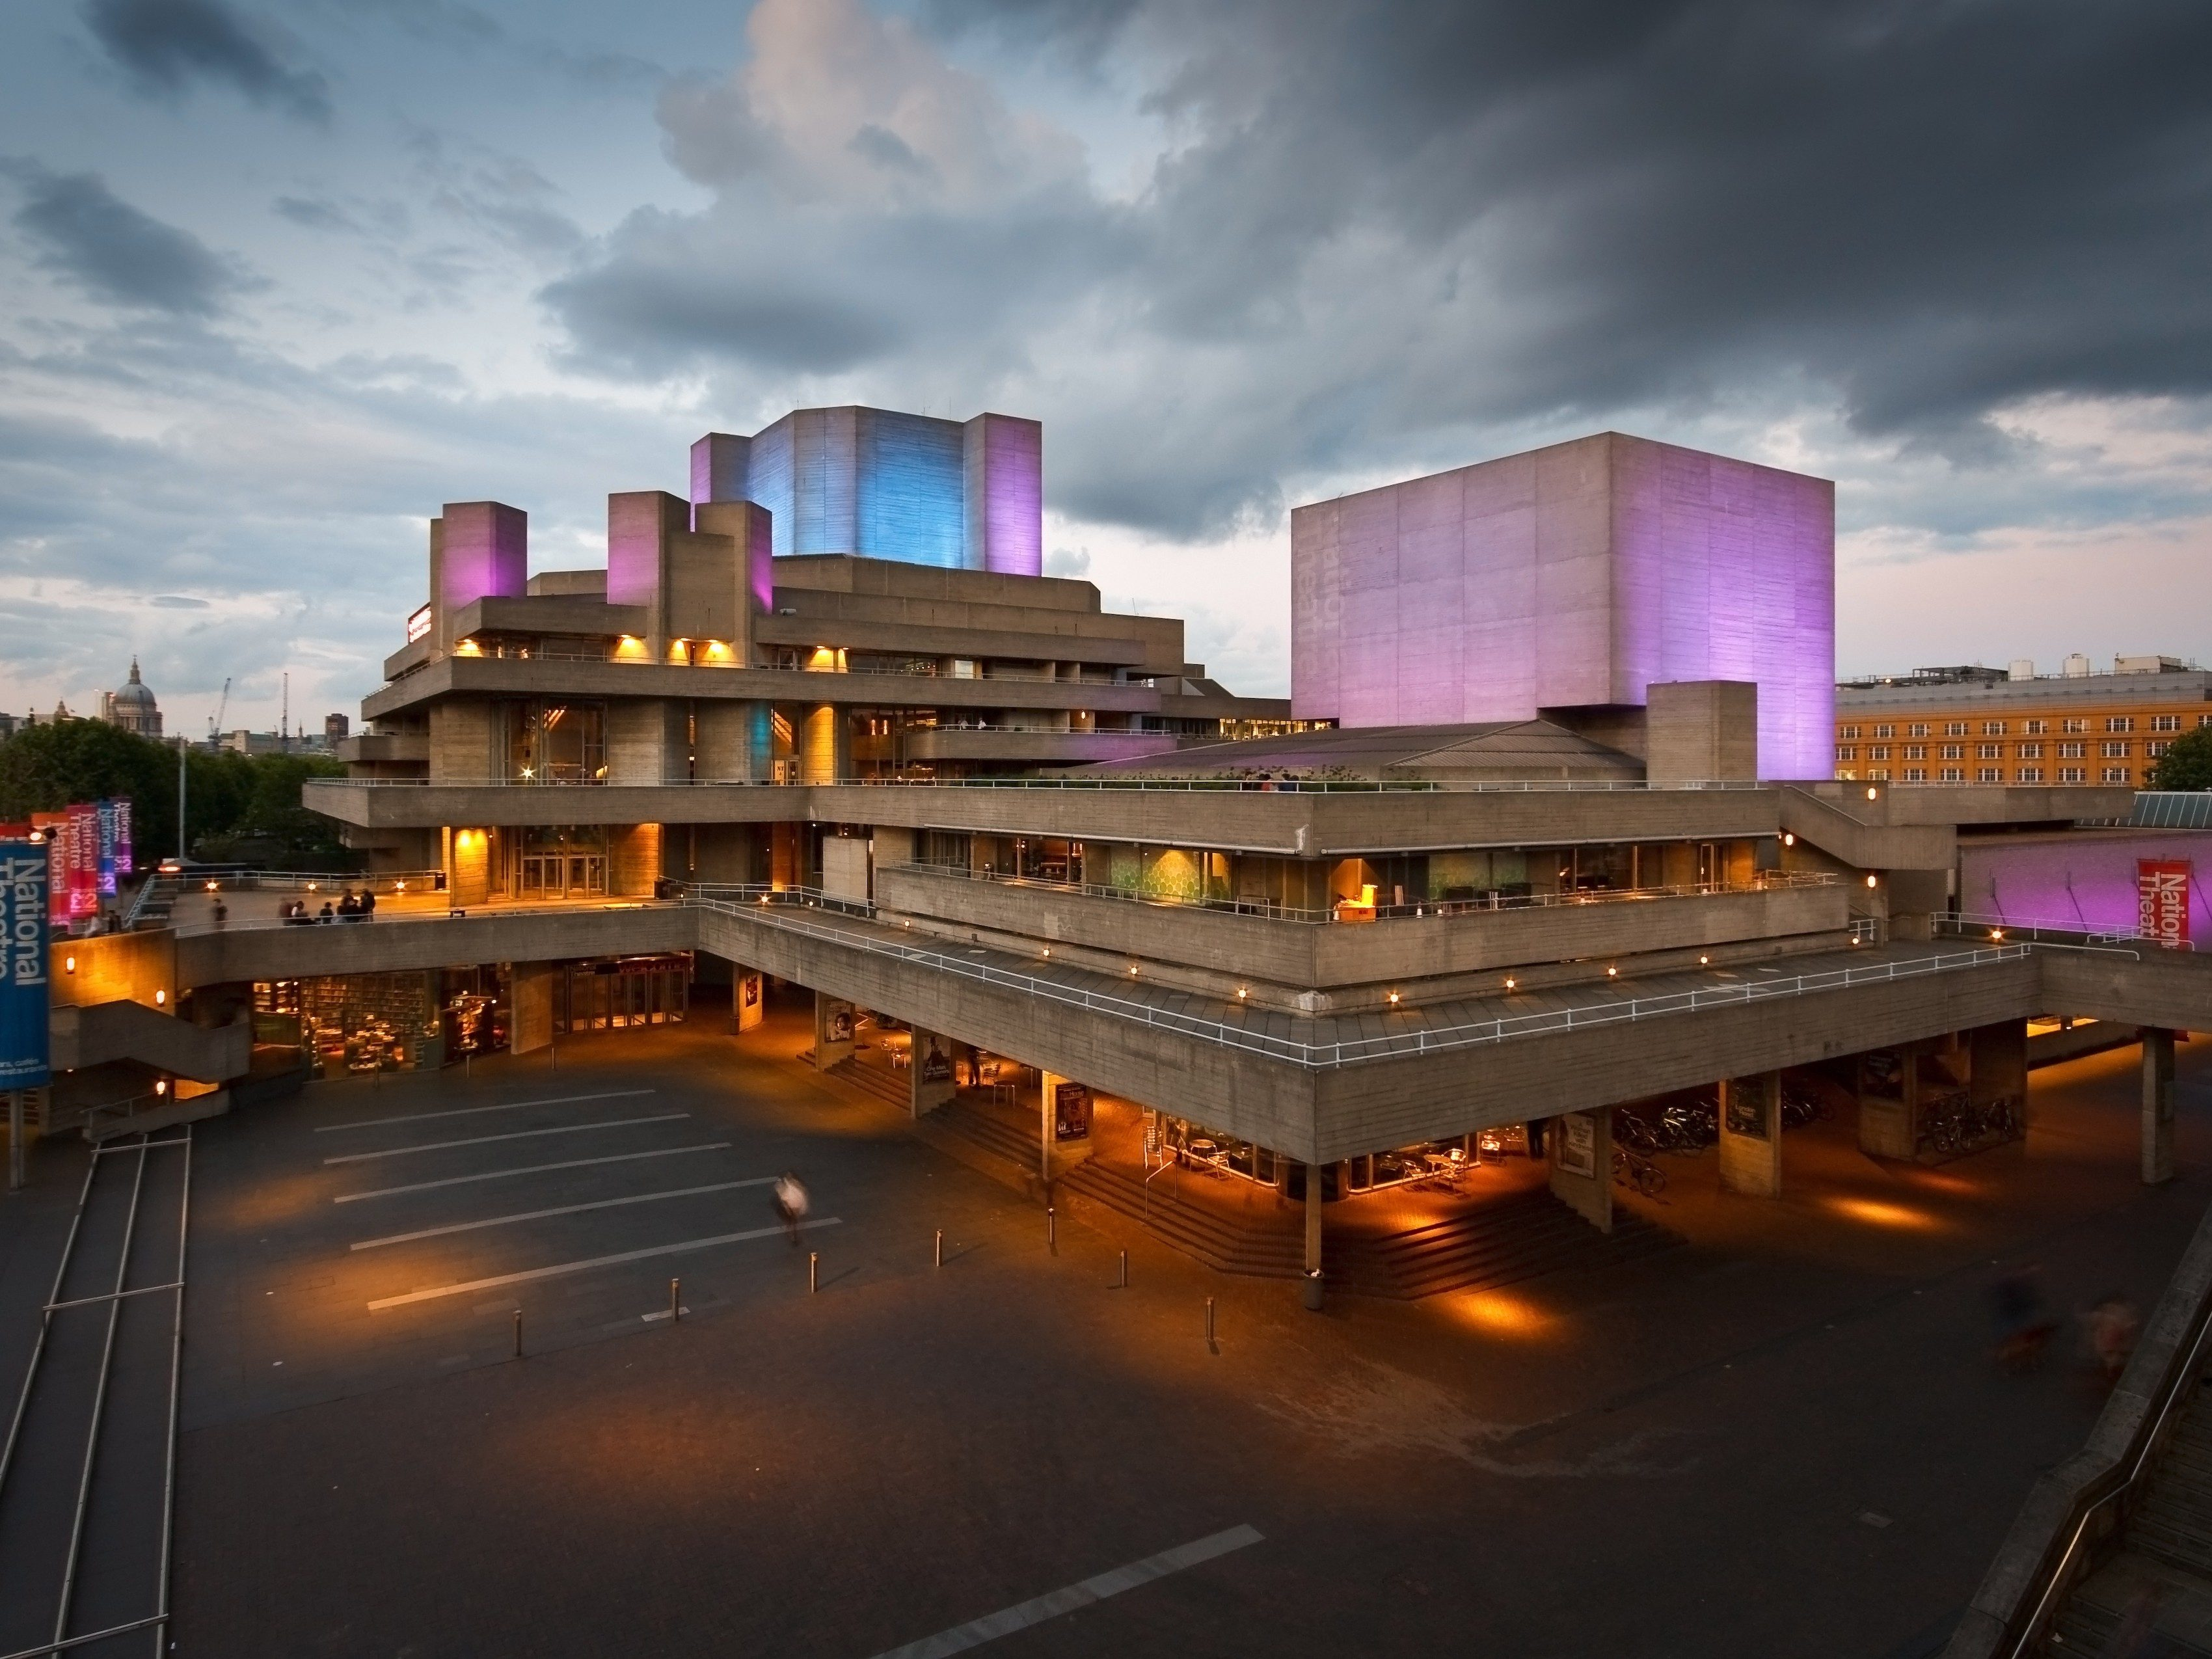 7. The National Theatre